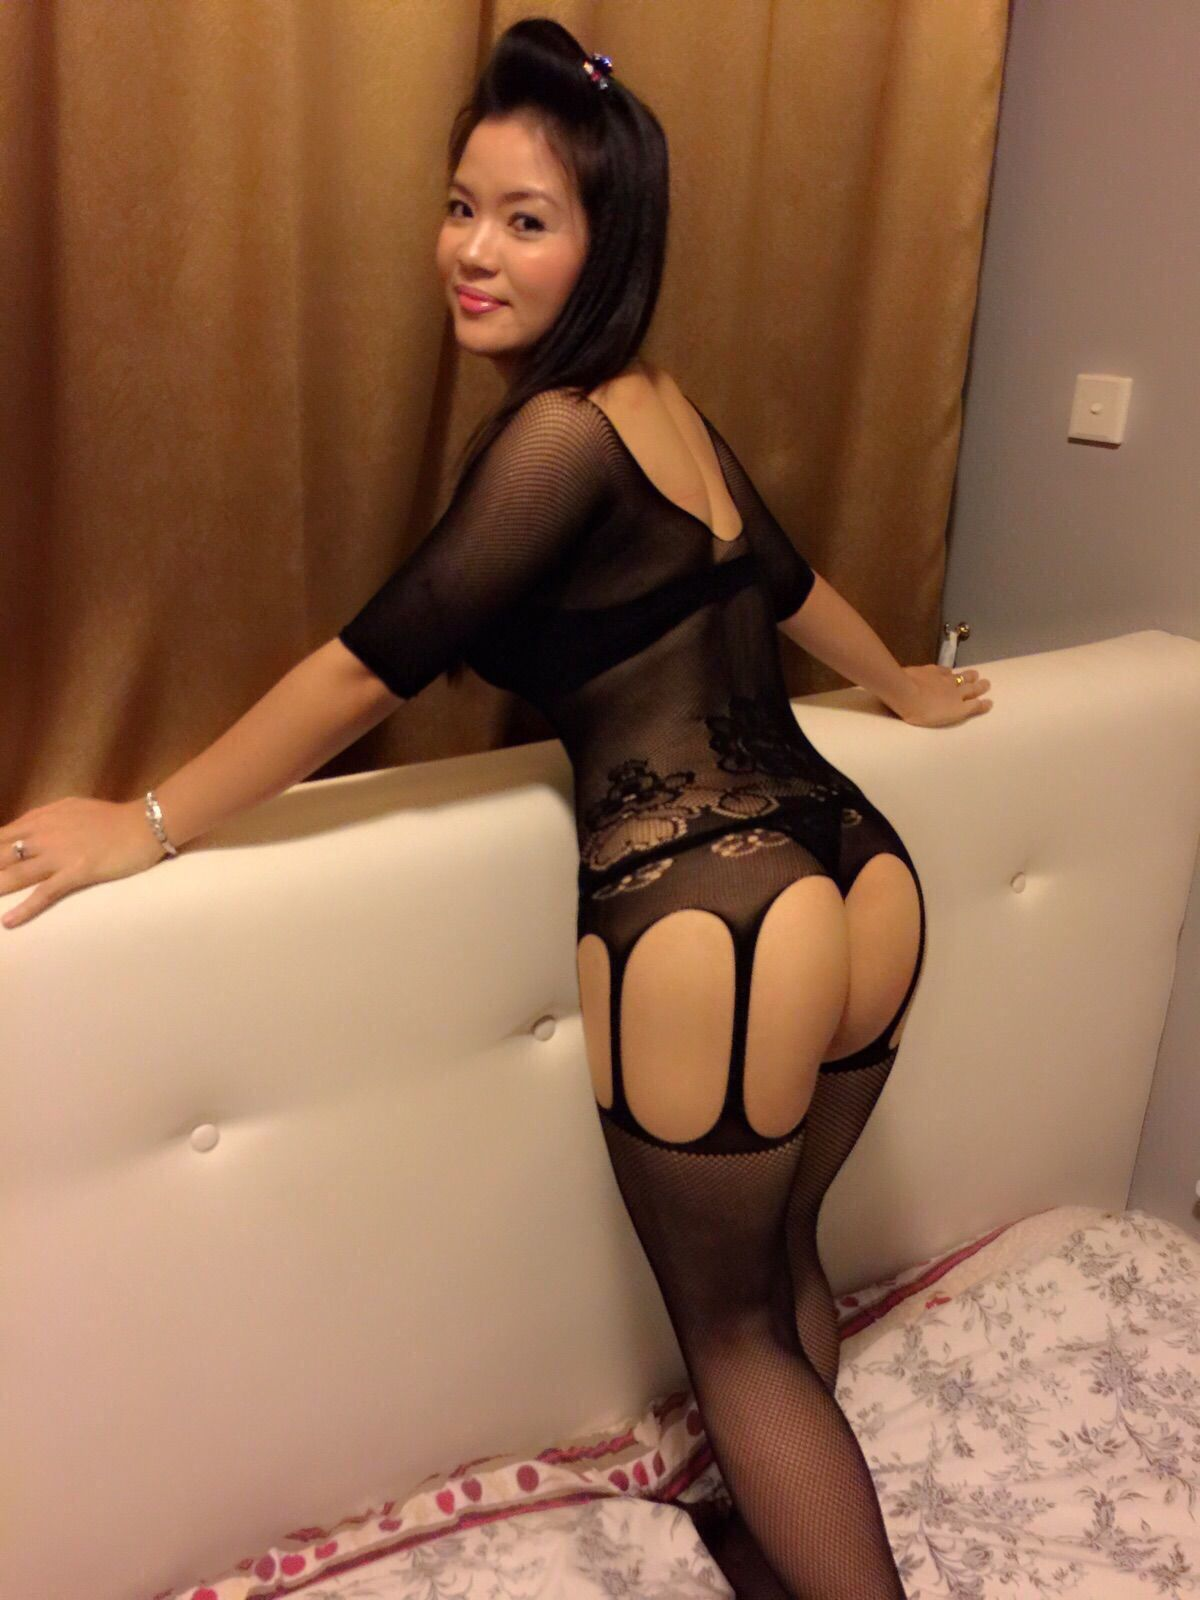 professional escort massage eskorte